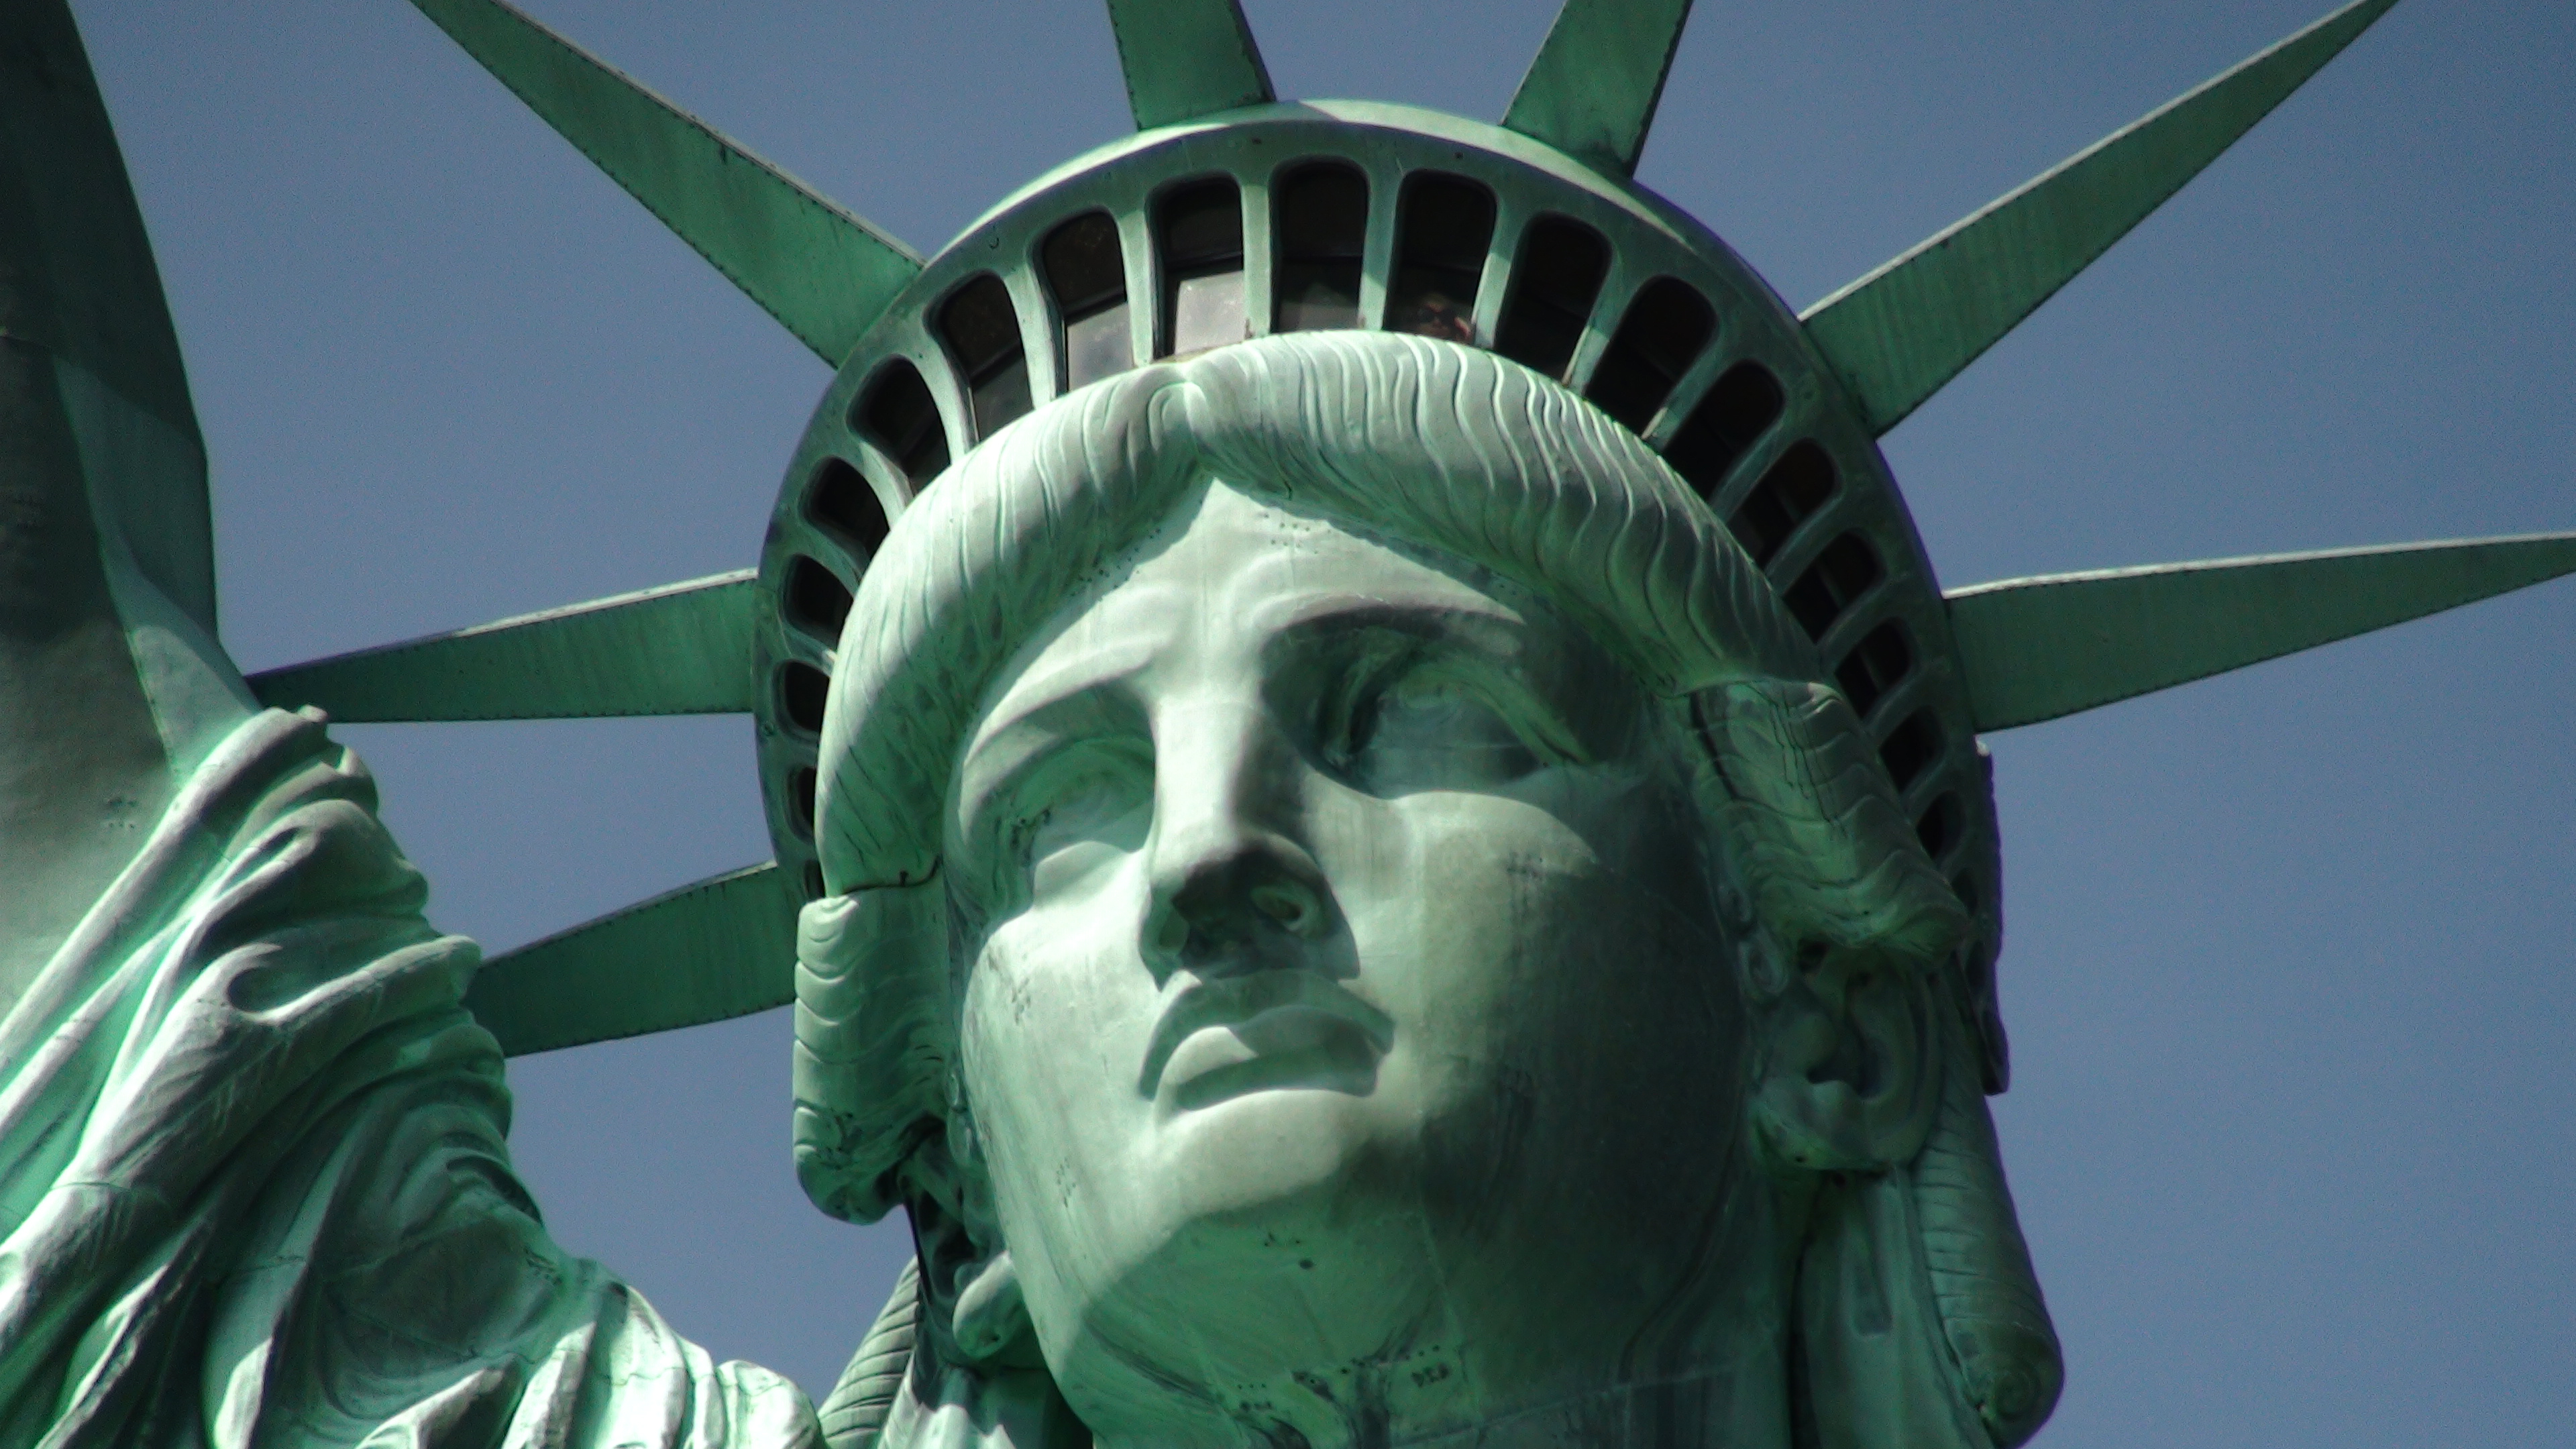 Statue of Liberty - National Monument in New York City - Thousand ...